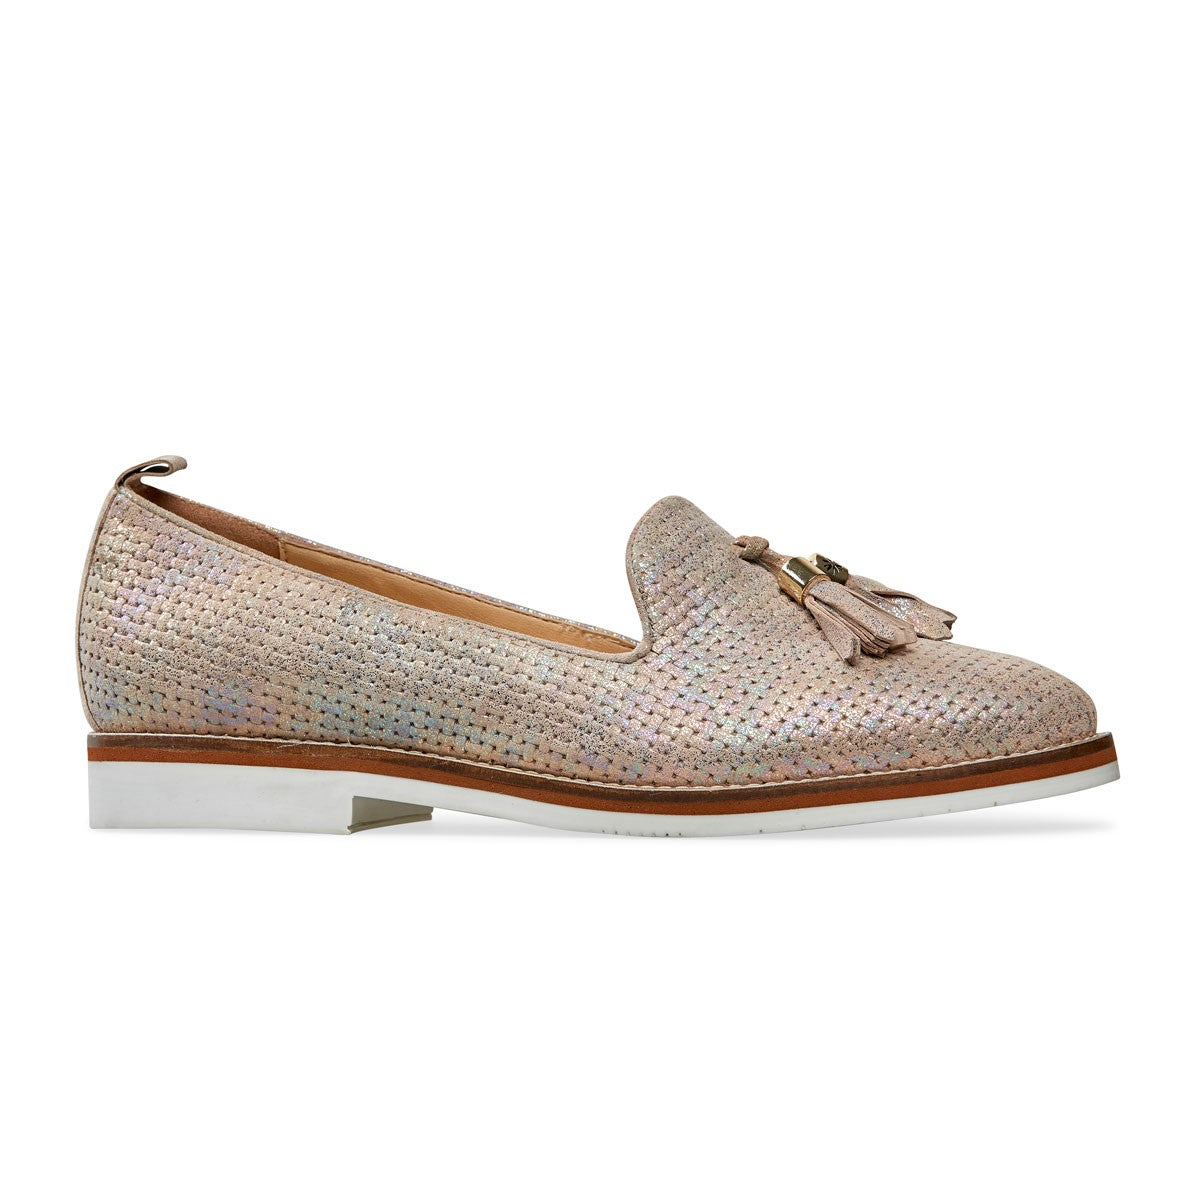 Ridley Low Heel Loafer Tassel Shoe